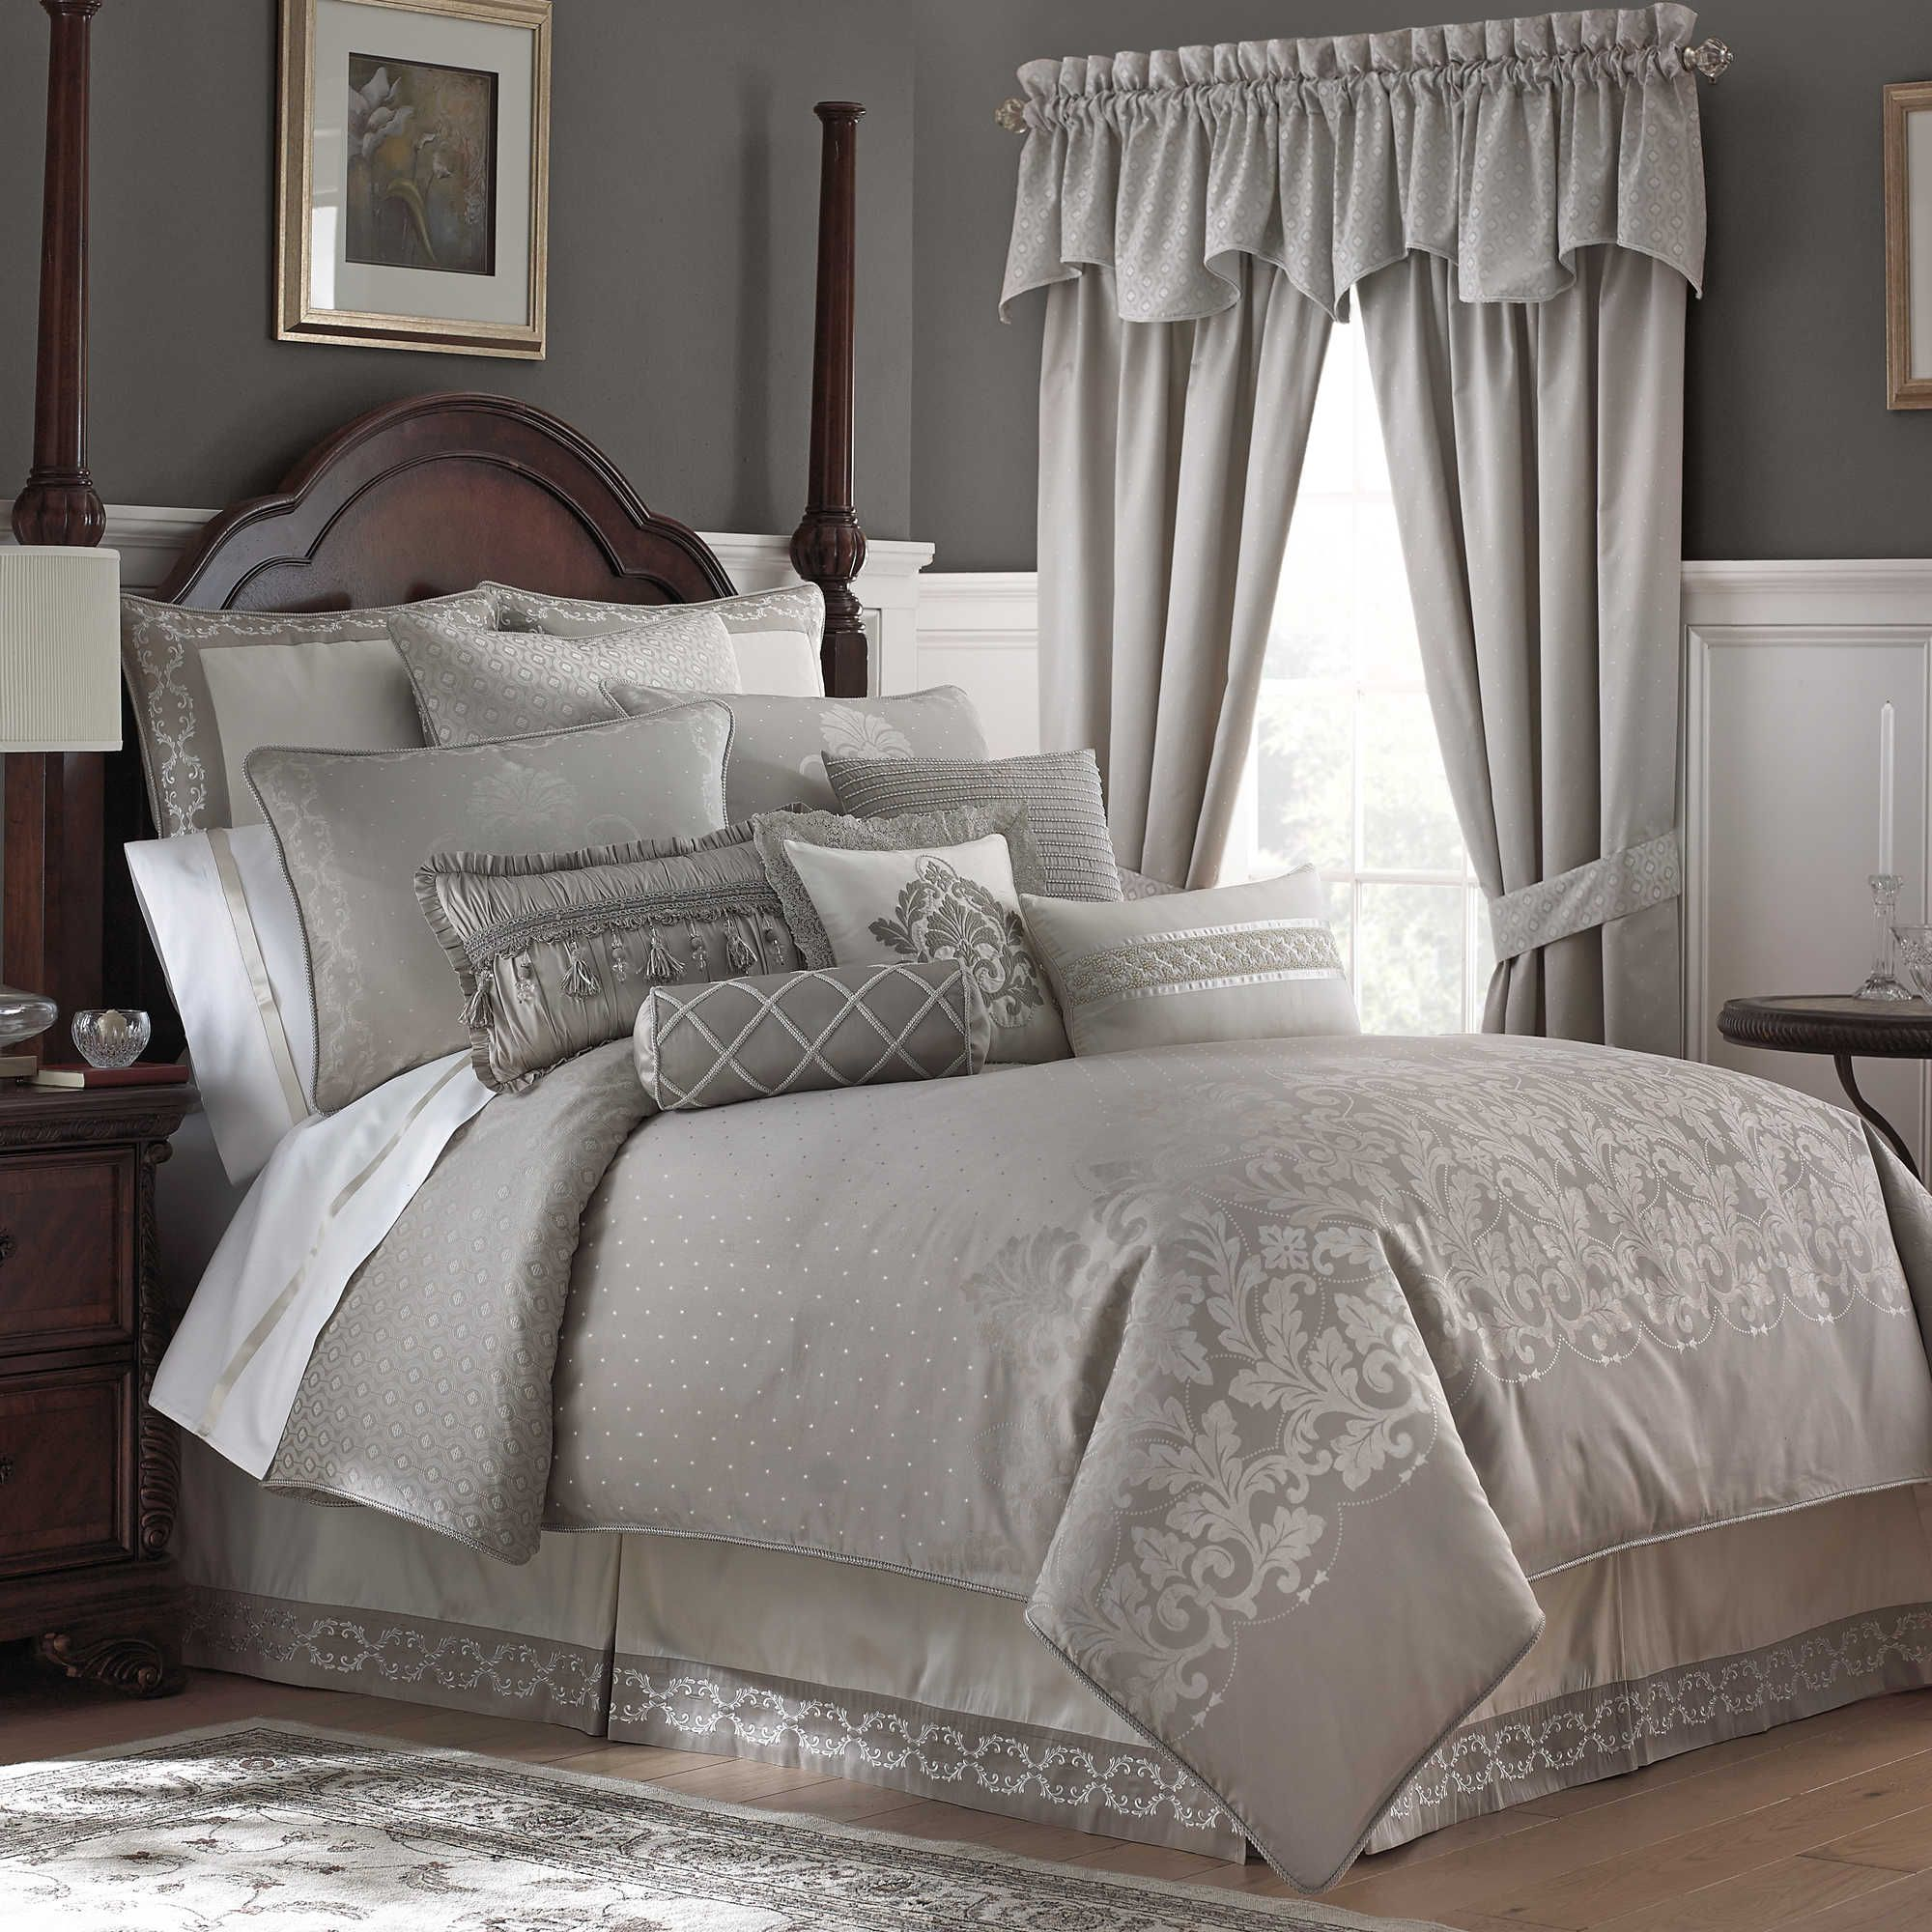 prod by src quilted inc ostkcdn embroidered comforter com linen set and p artisi stone artistic pebble piece